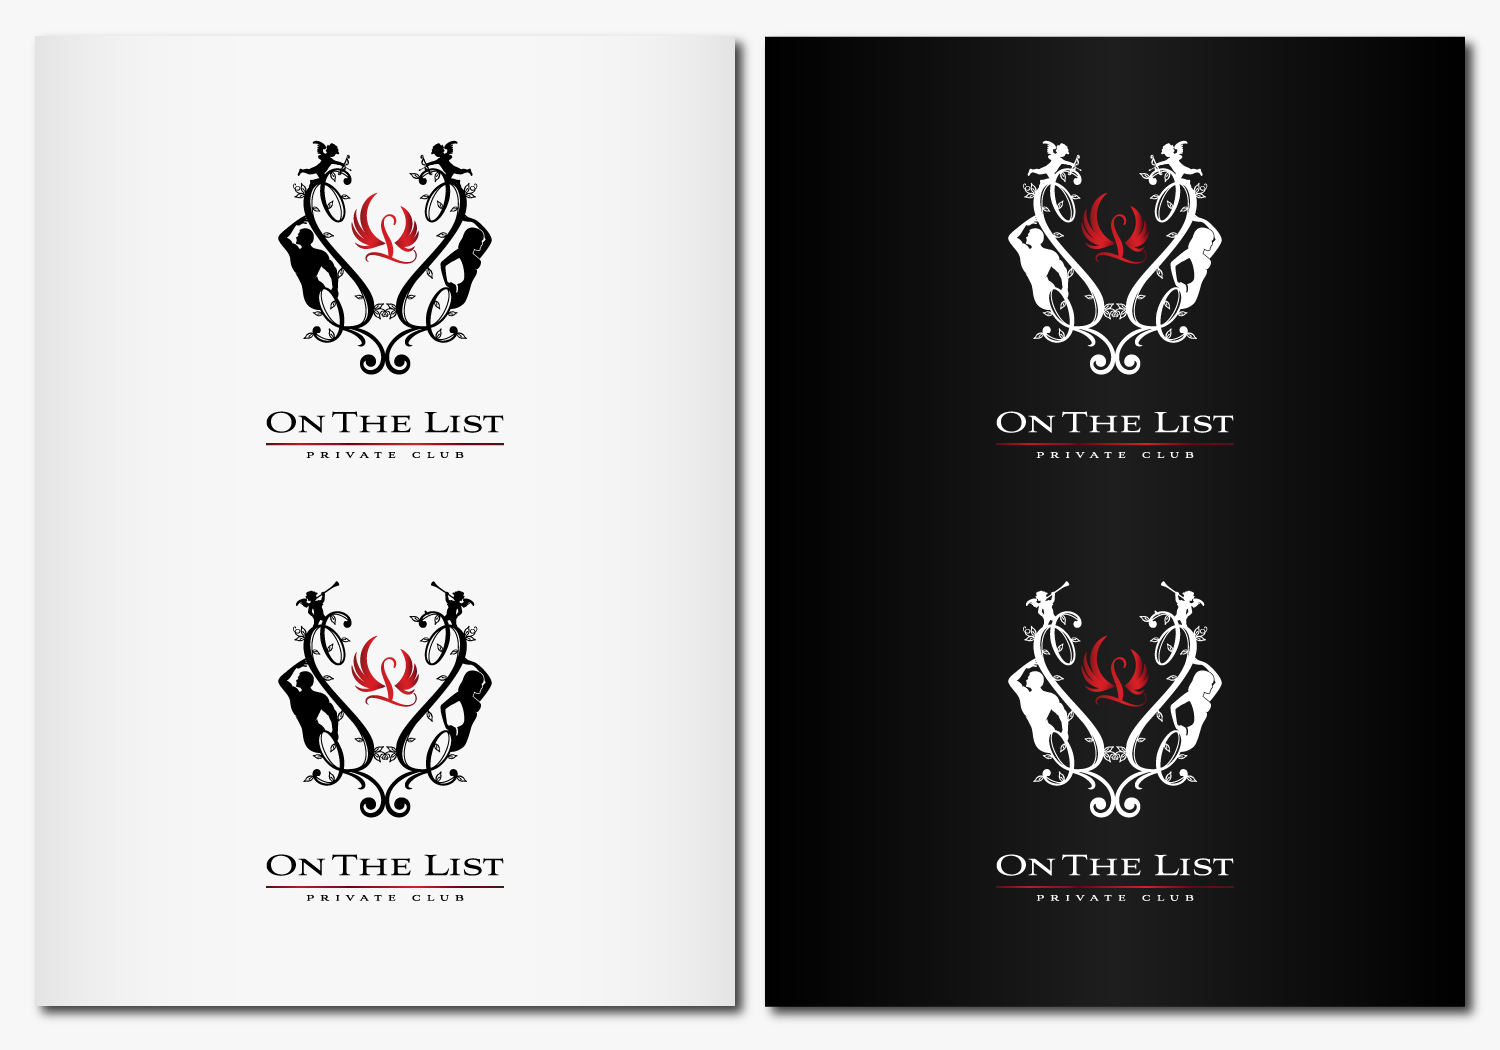 Your Talent and Creativity are required to help OnTheList with a new luxury logo